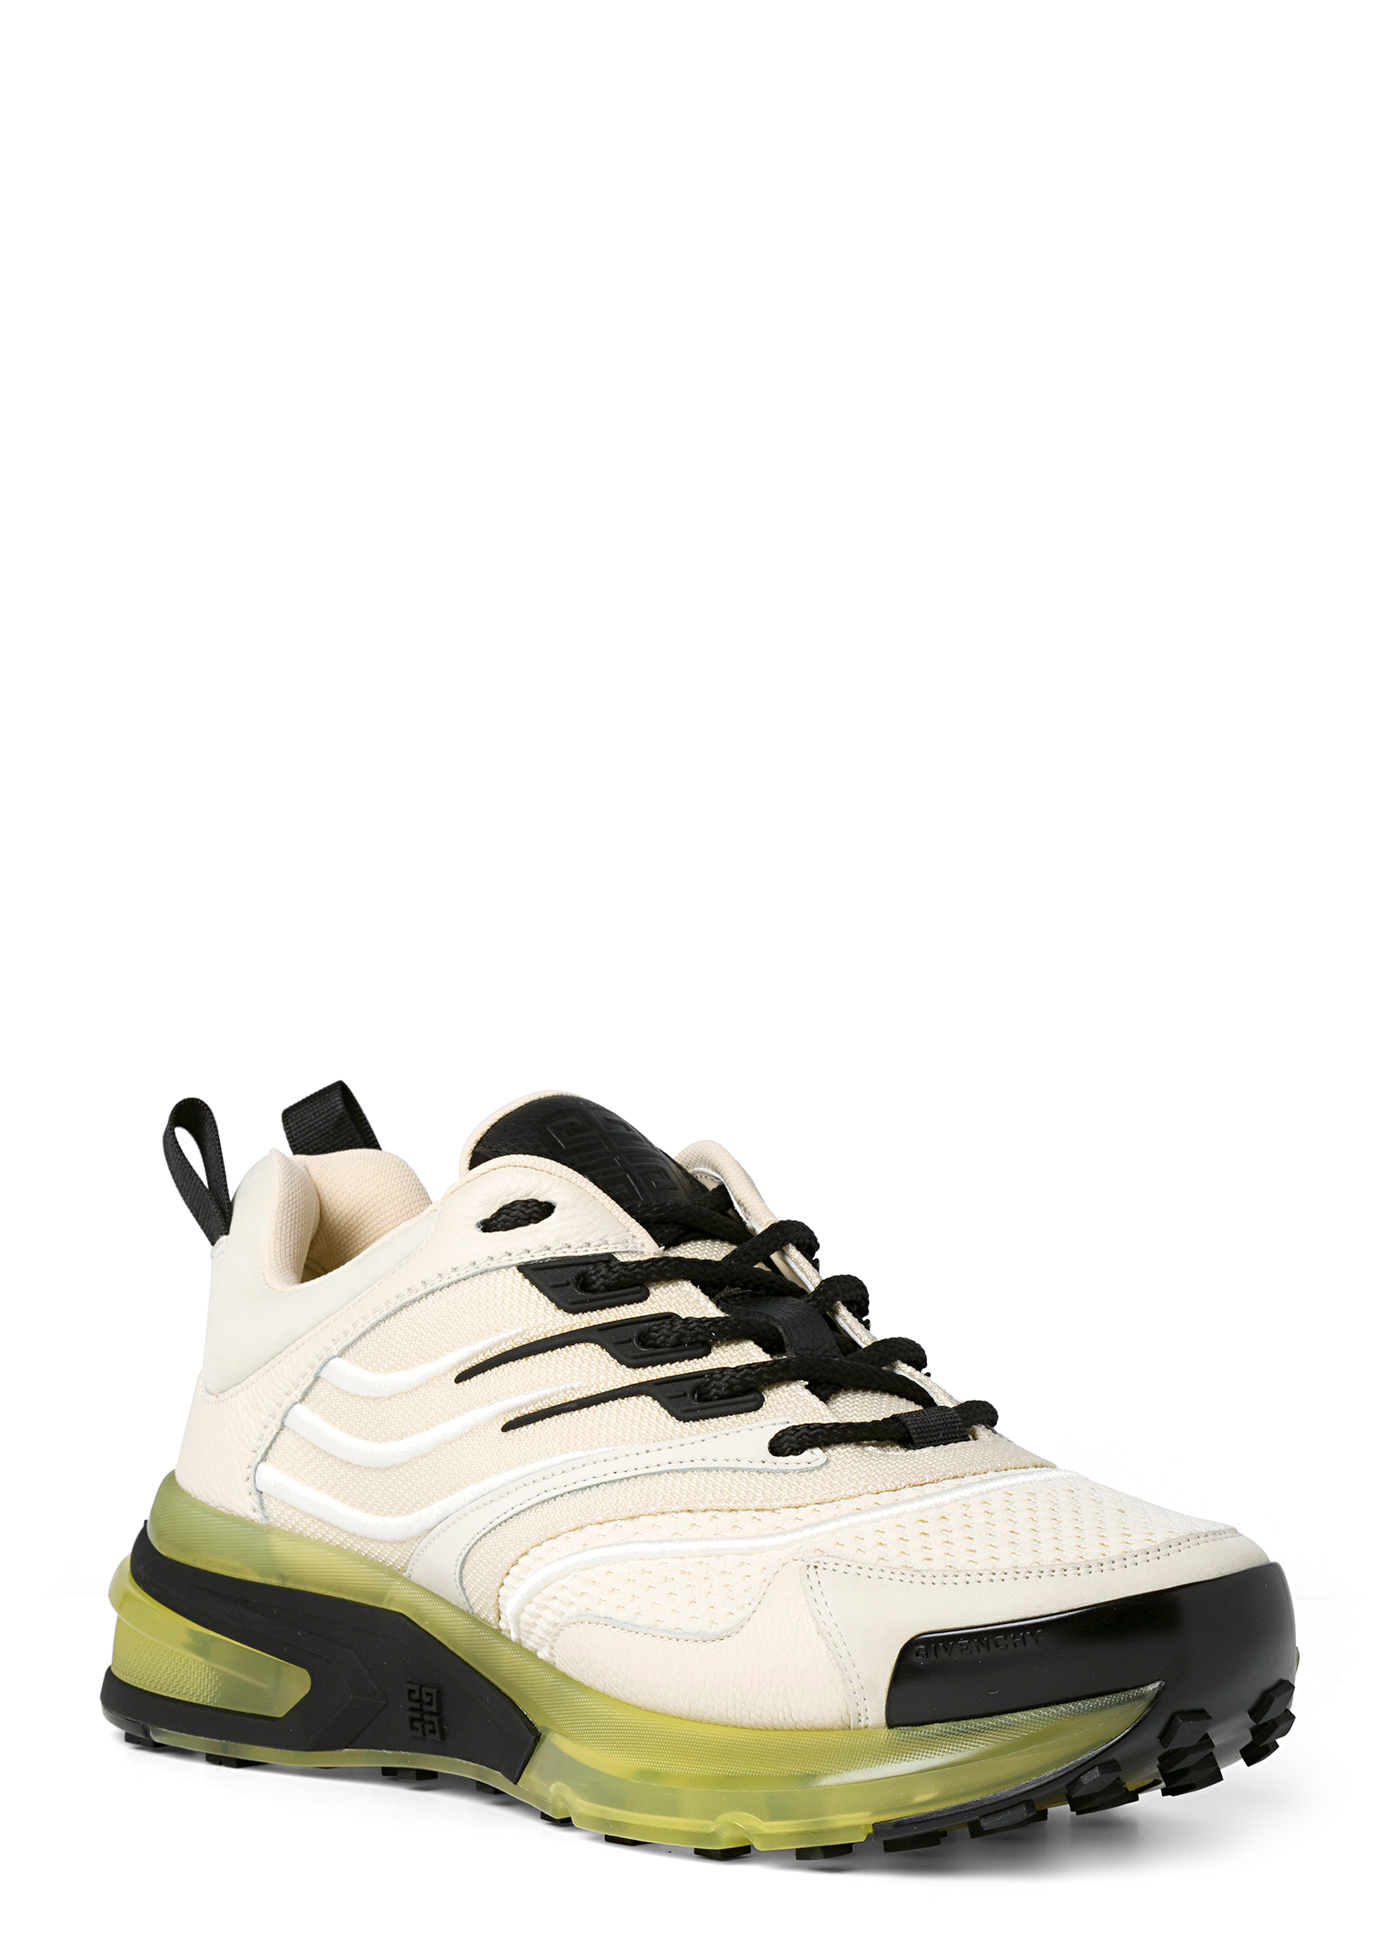 GIV 1 SNEAKERS image number 1